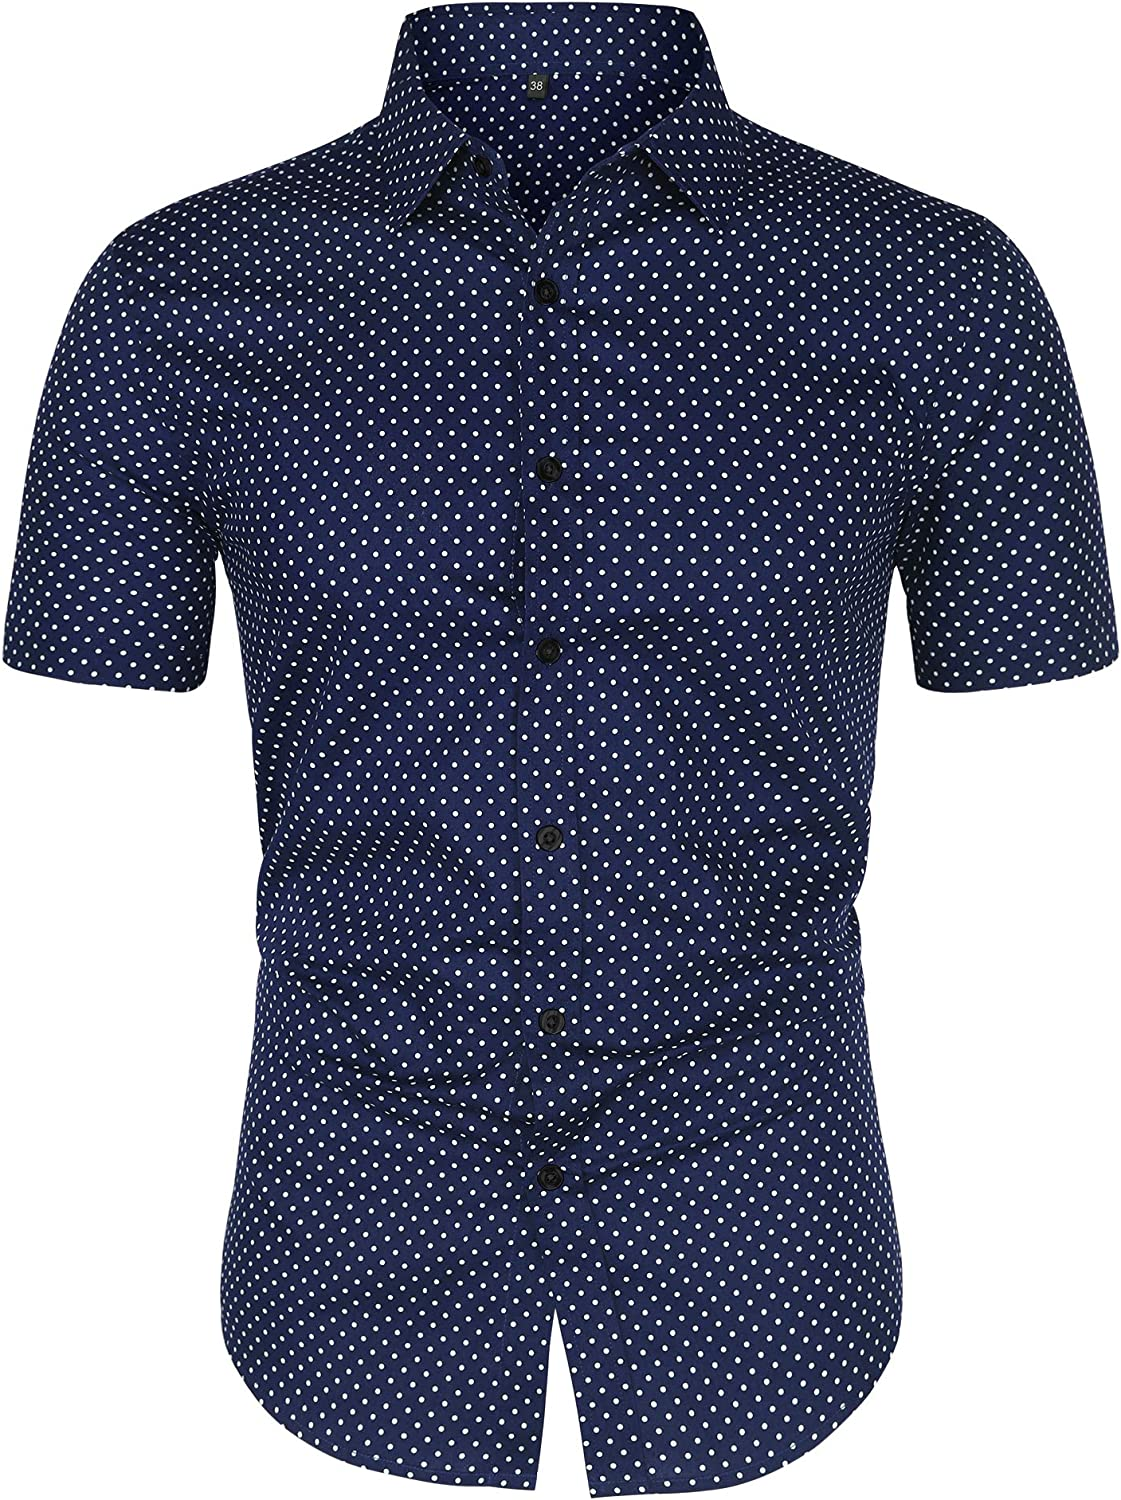 lowest price Max 56% OFF uxcell Men's Printed Cotton Dress Polka Sleeves Short Dots Butto